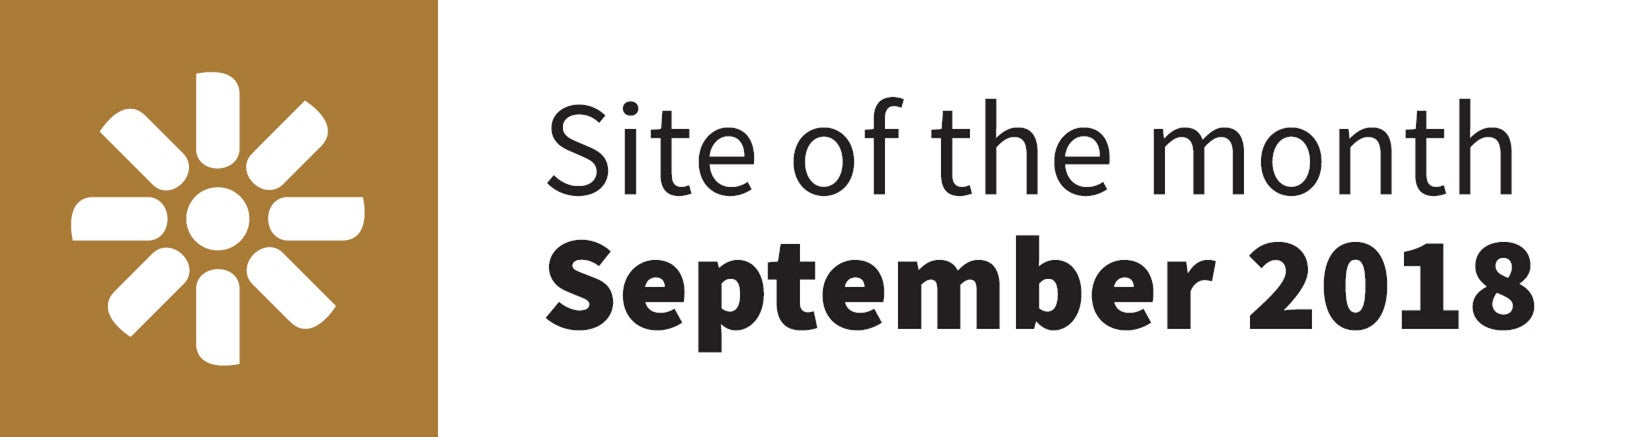 Kentico Site of the Month logo